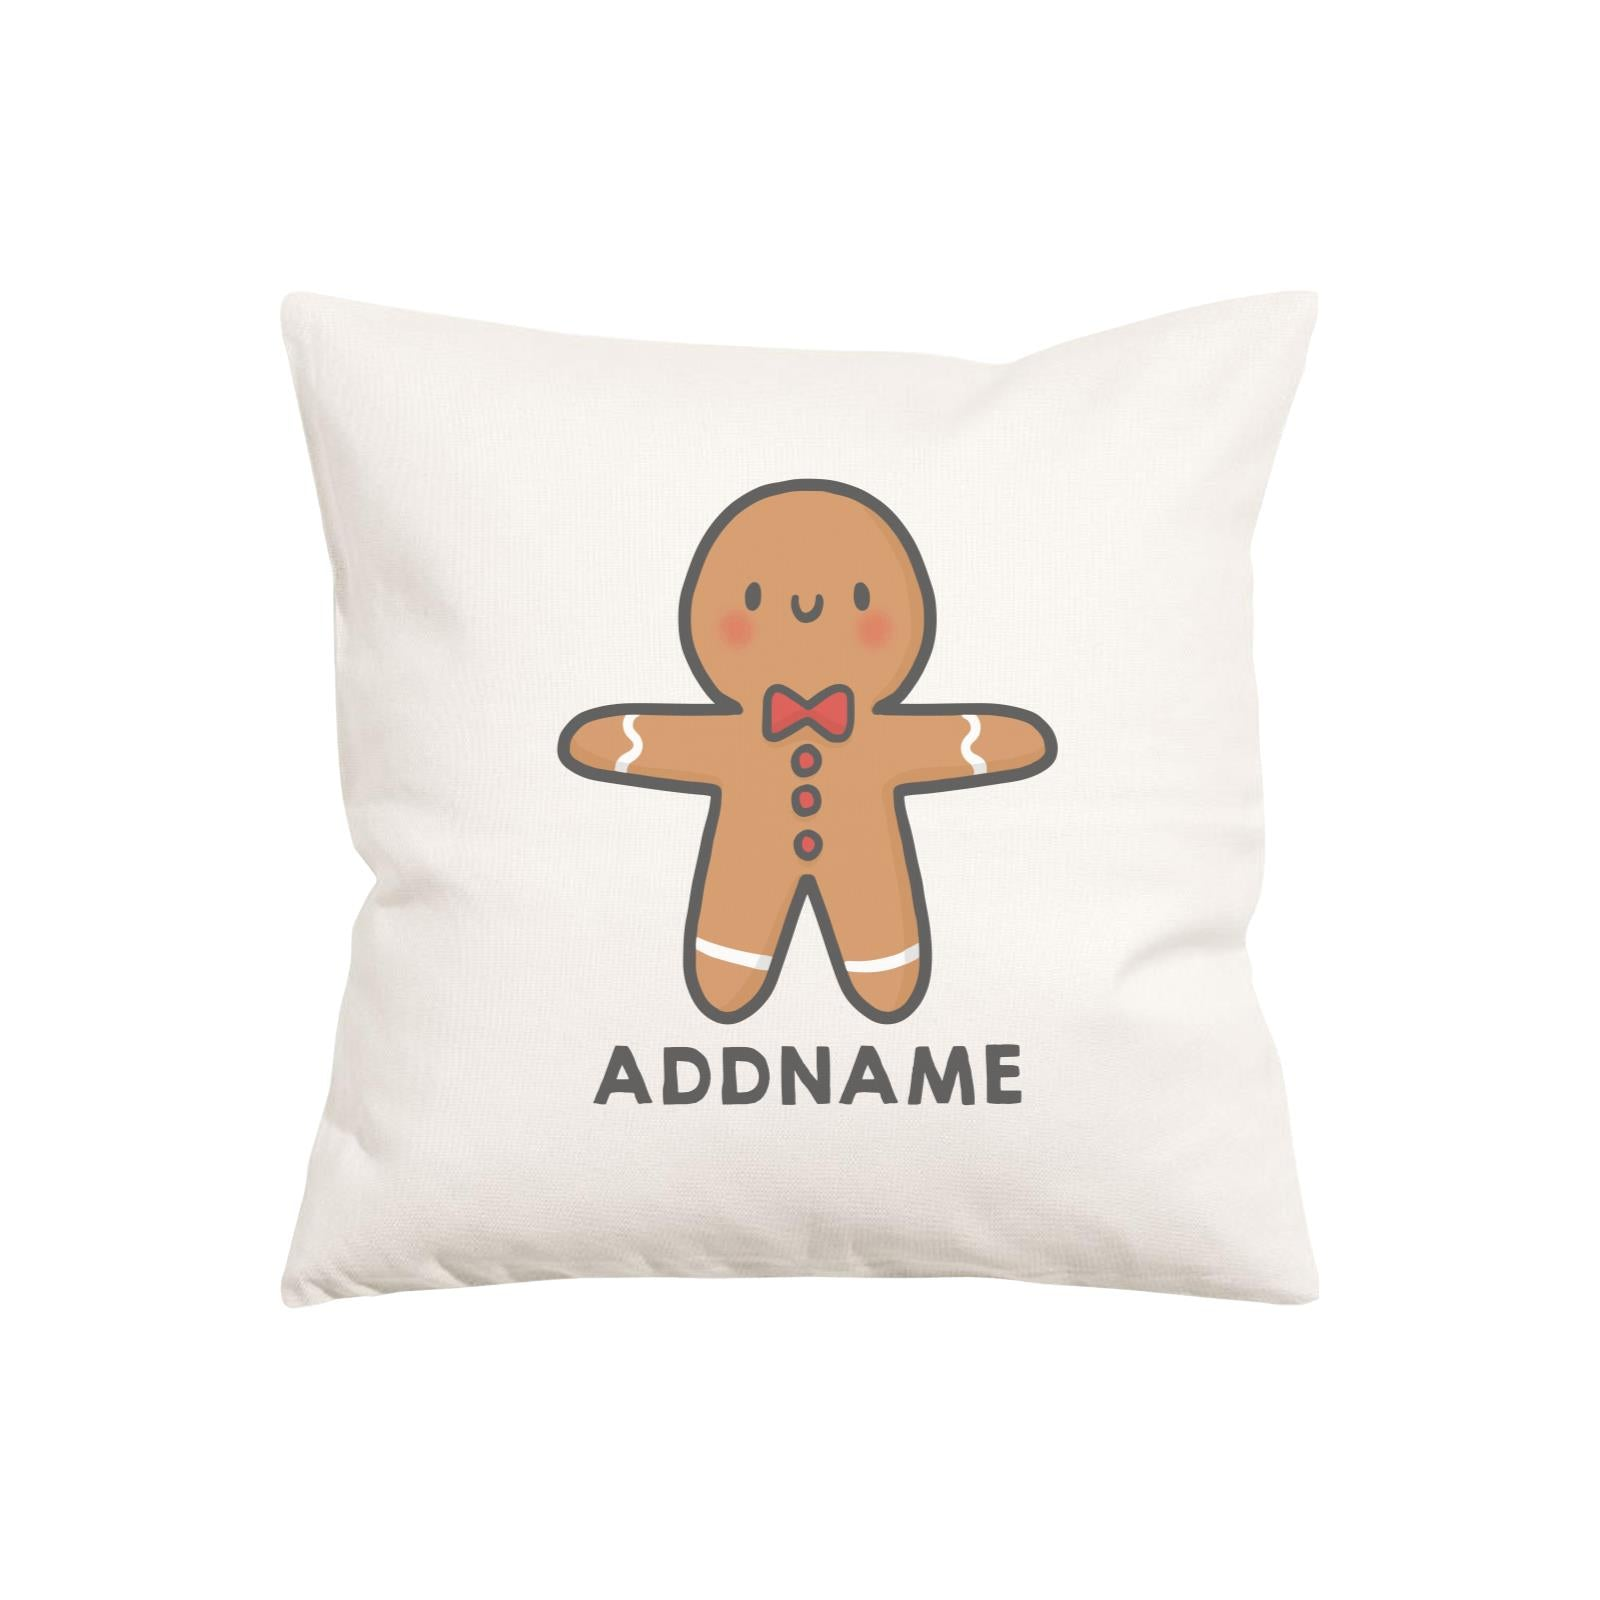 Xmas Cute Gingerbread Man Addname Pillow Cushion